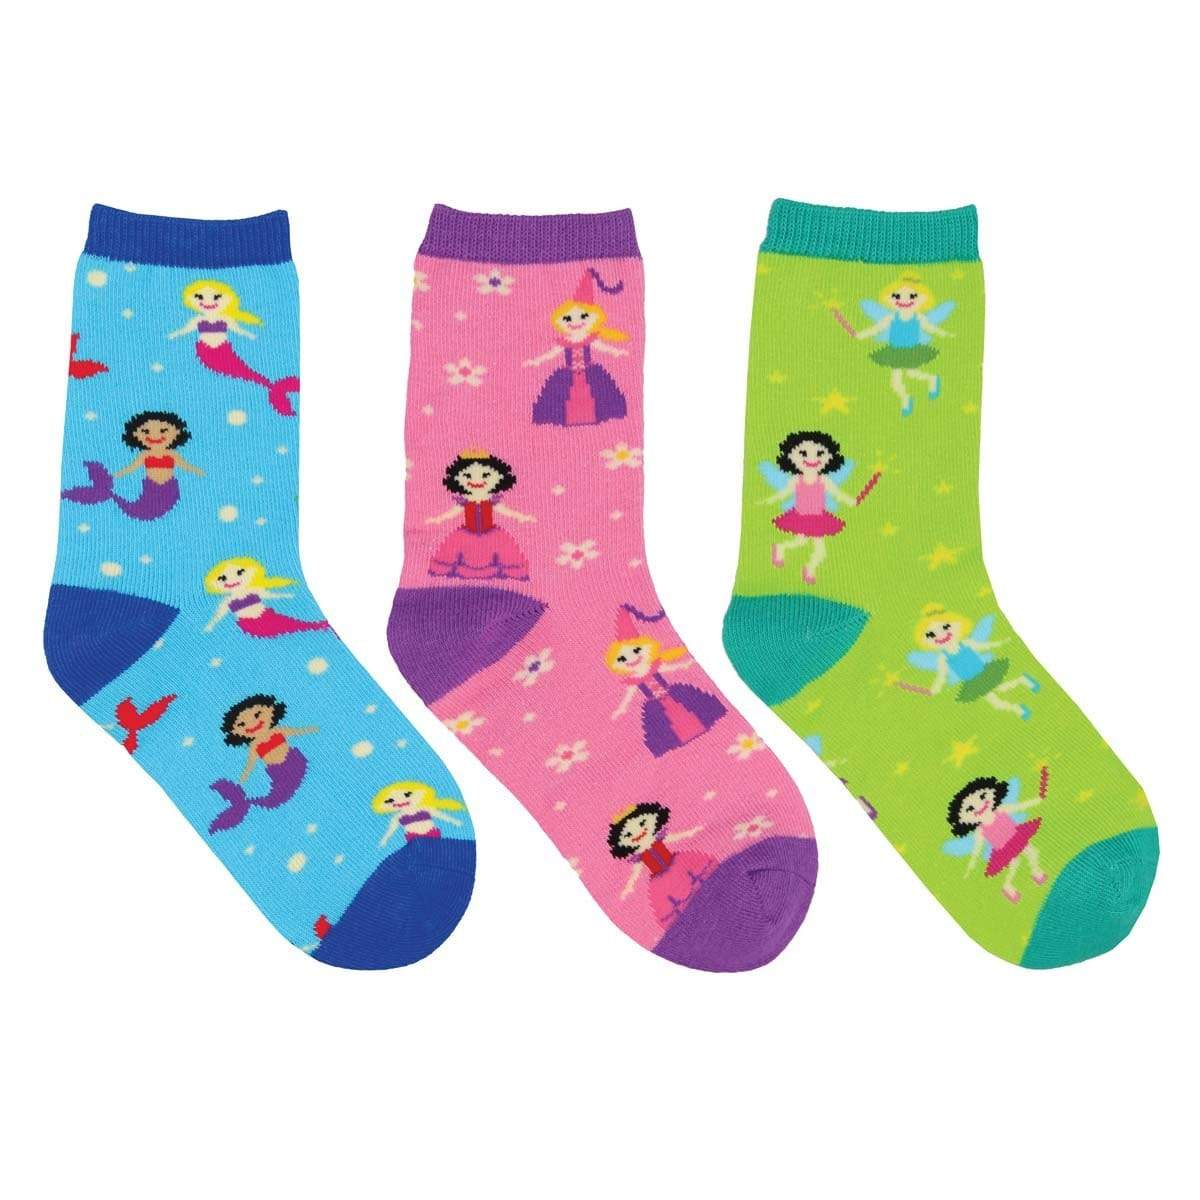 Happily Ever After Crew Sock 3 Pack